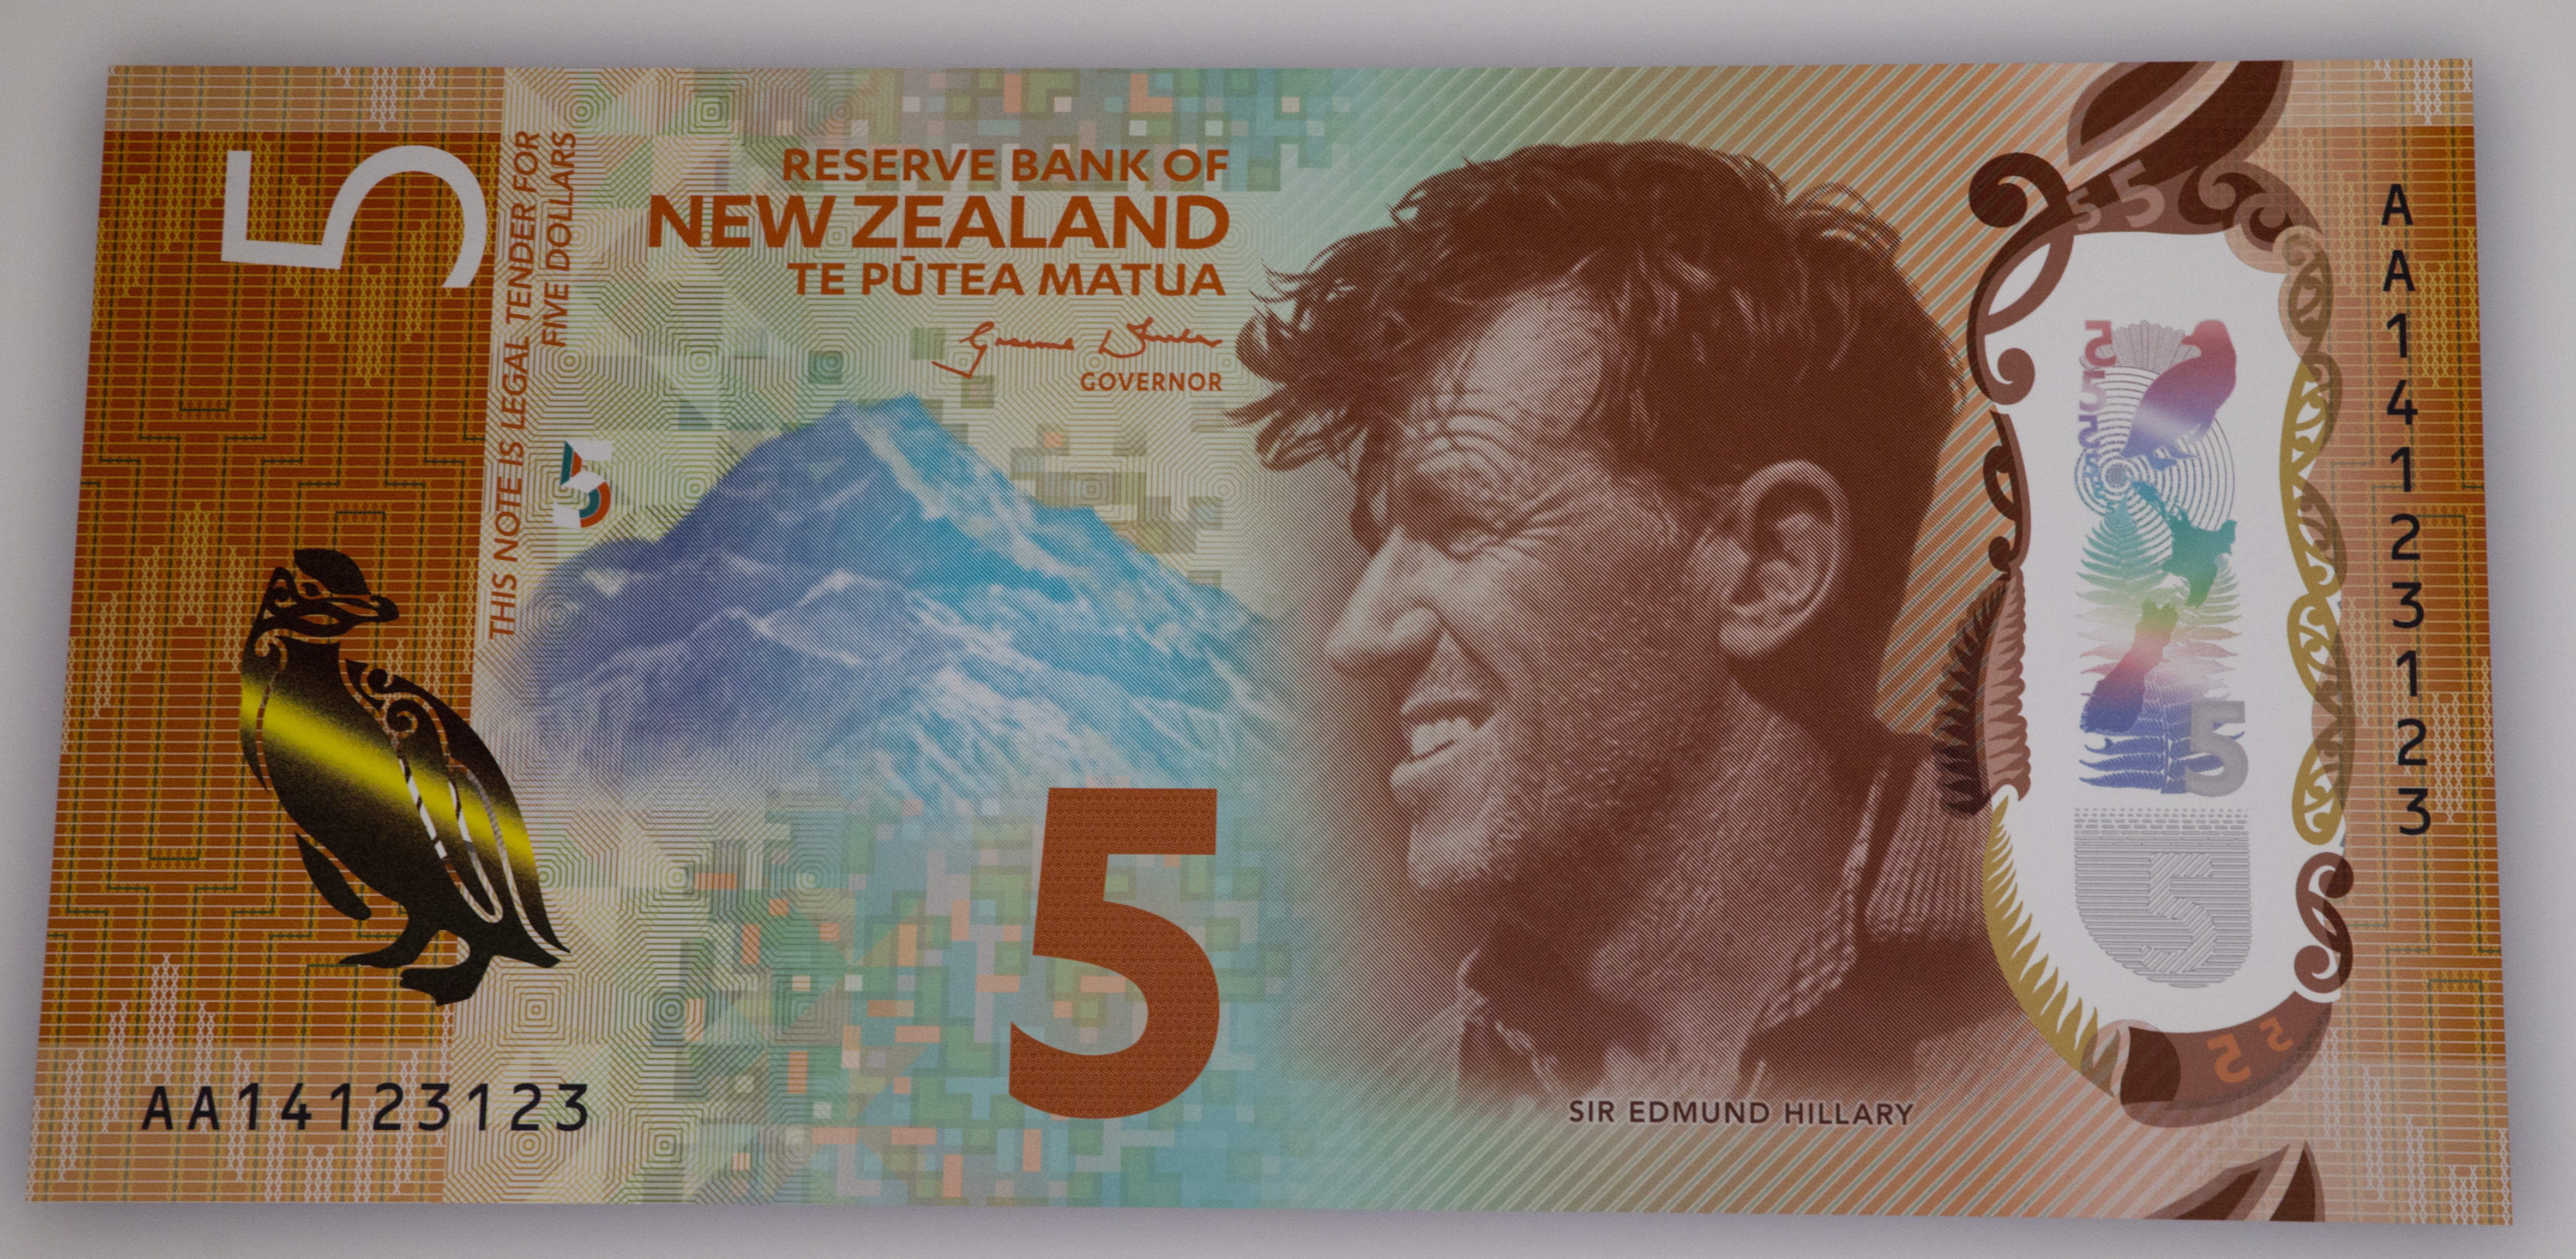 Nz Rules Five Dollar Note Wins World Currency Beauty Parade